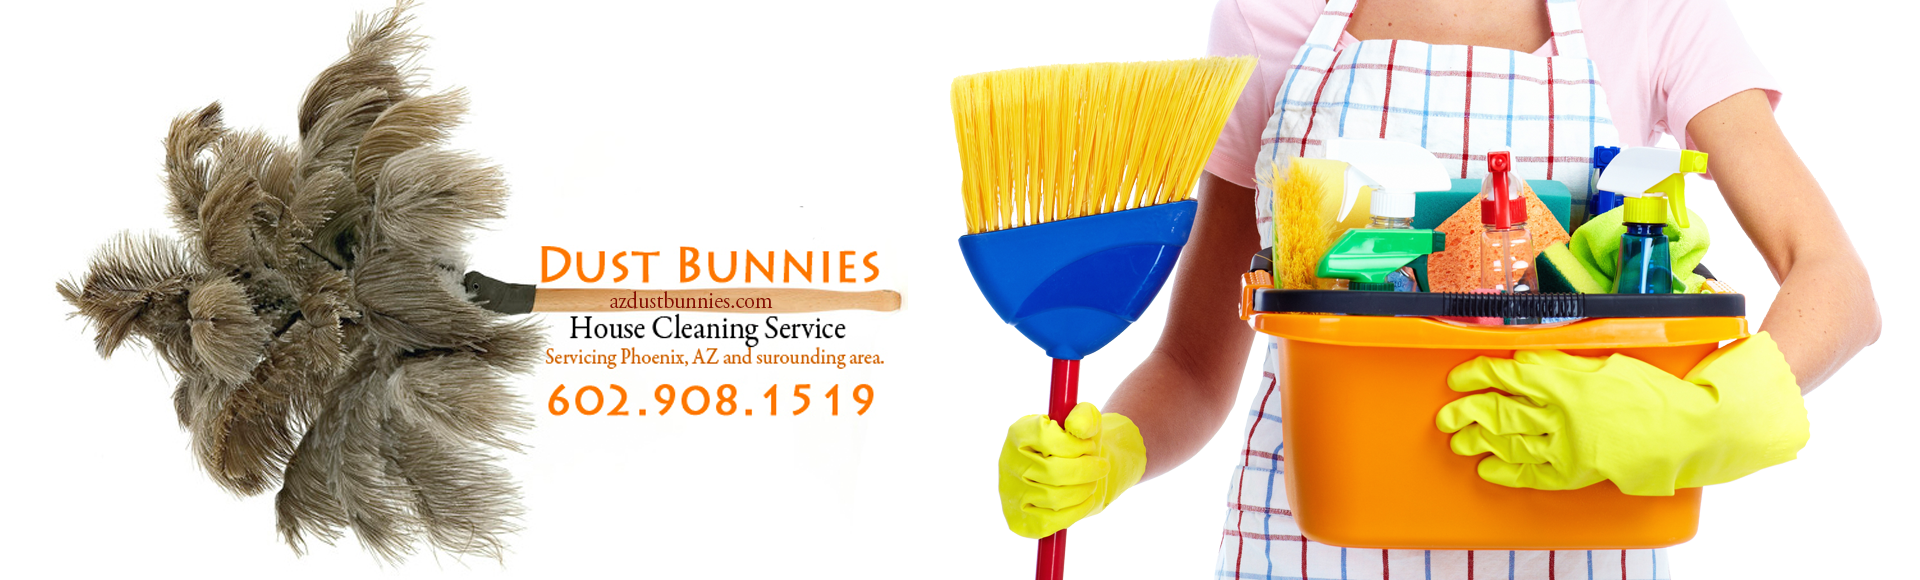 Delightful Glendale, Arizona House Cleaning Services Phoenix, AZ   Arizona House  Cleaning Service Dustbunnies